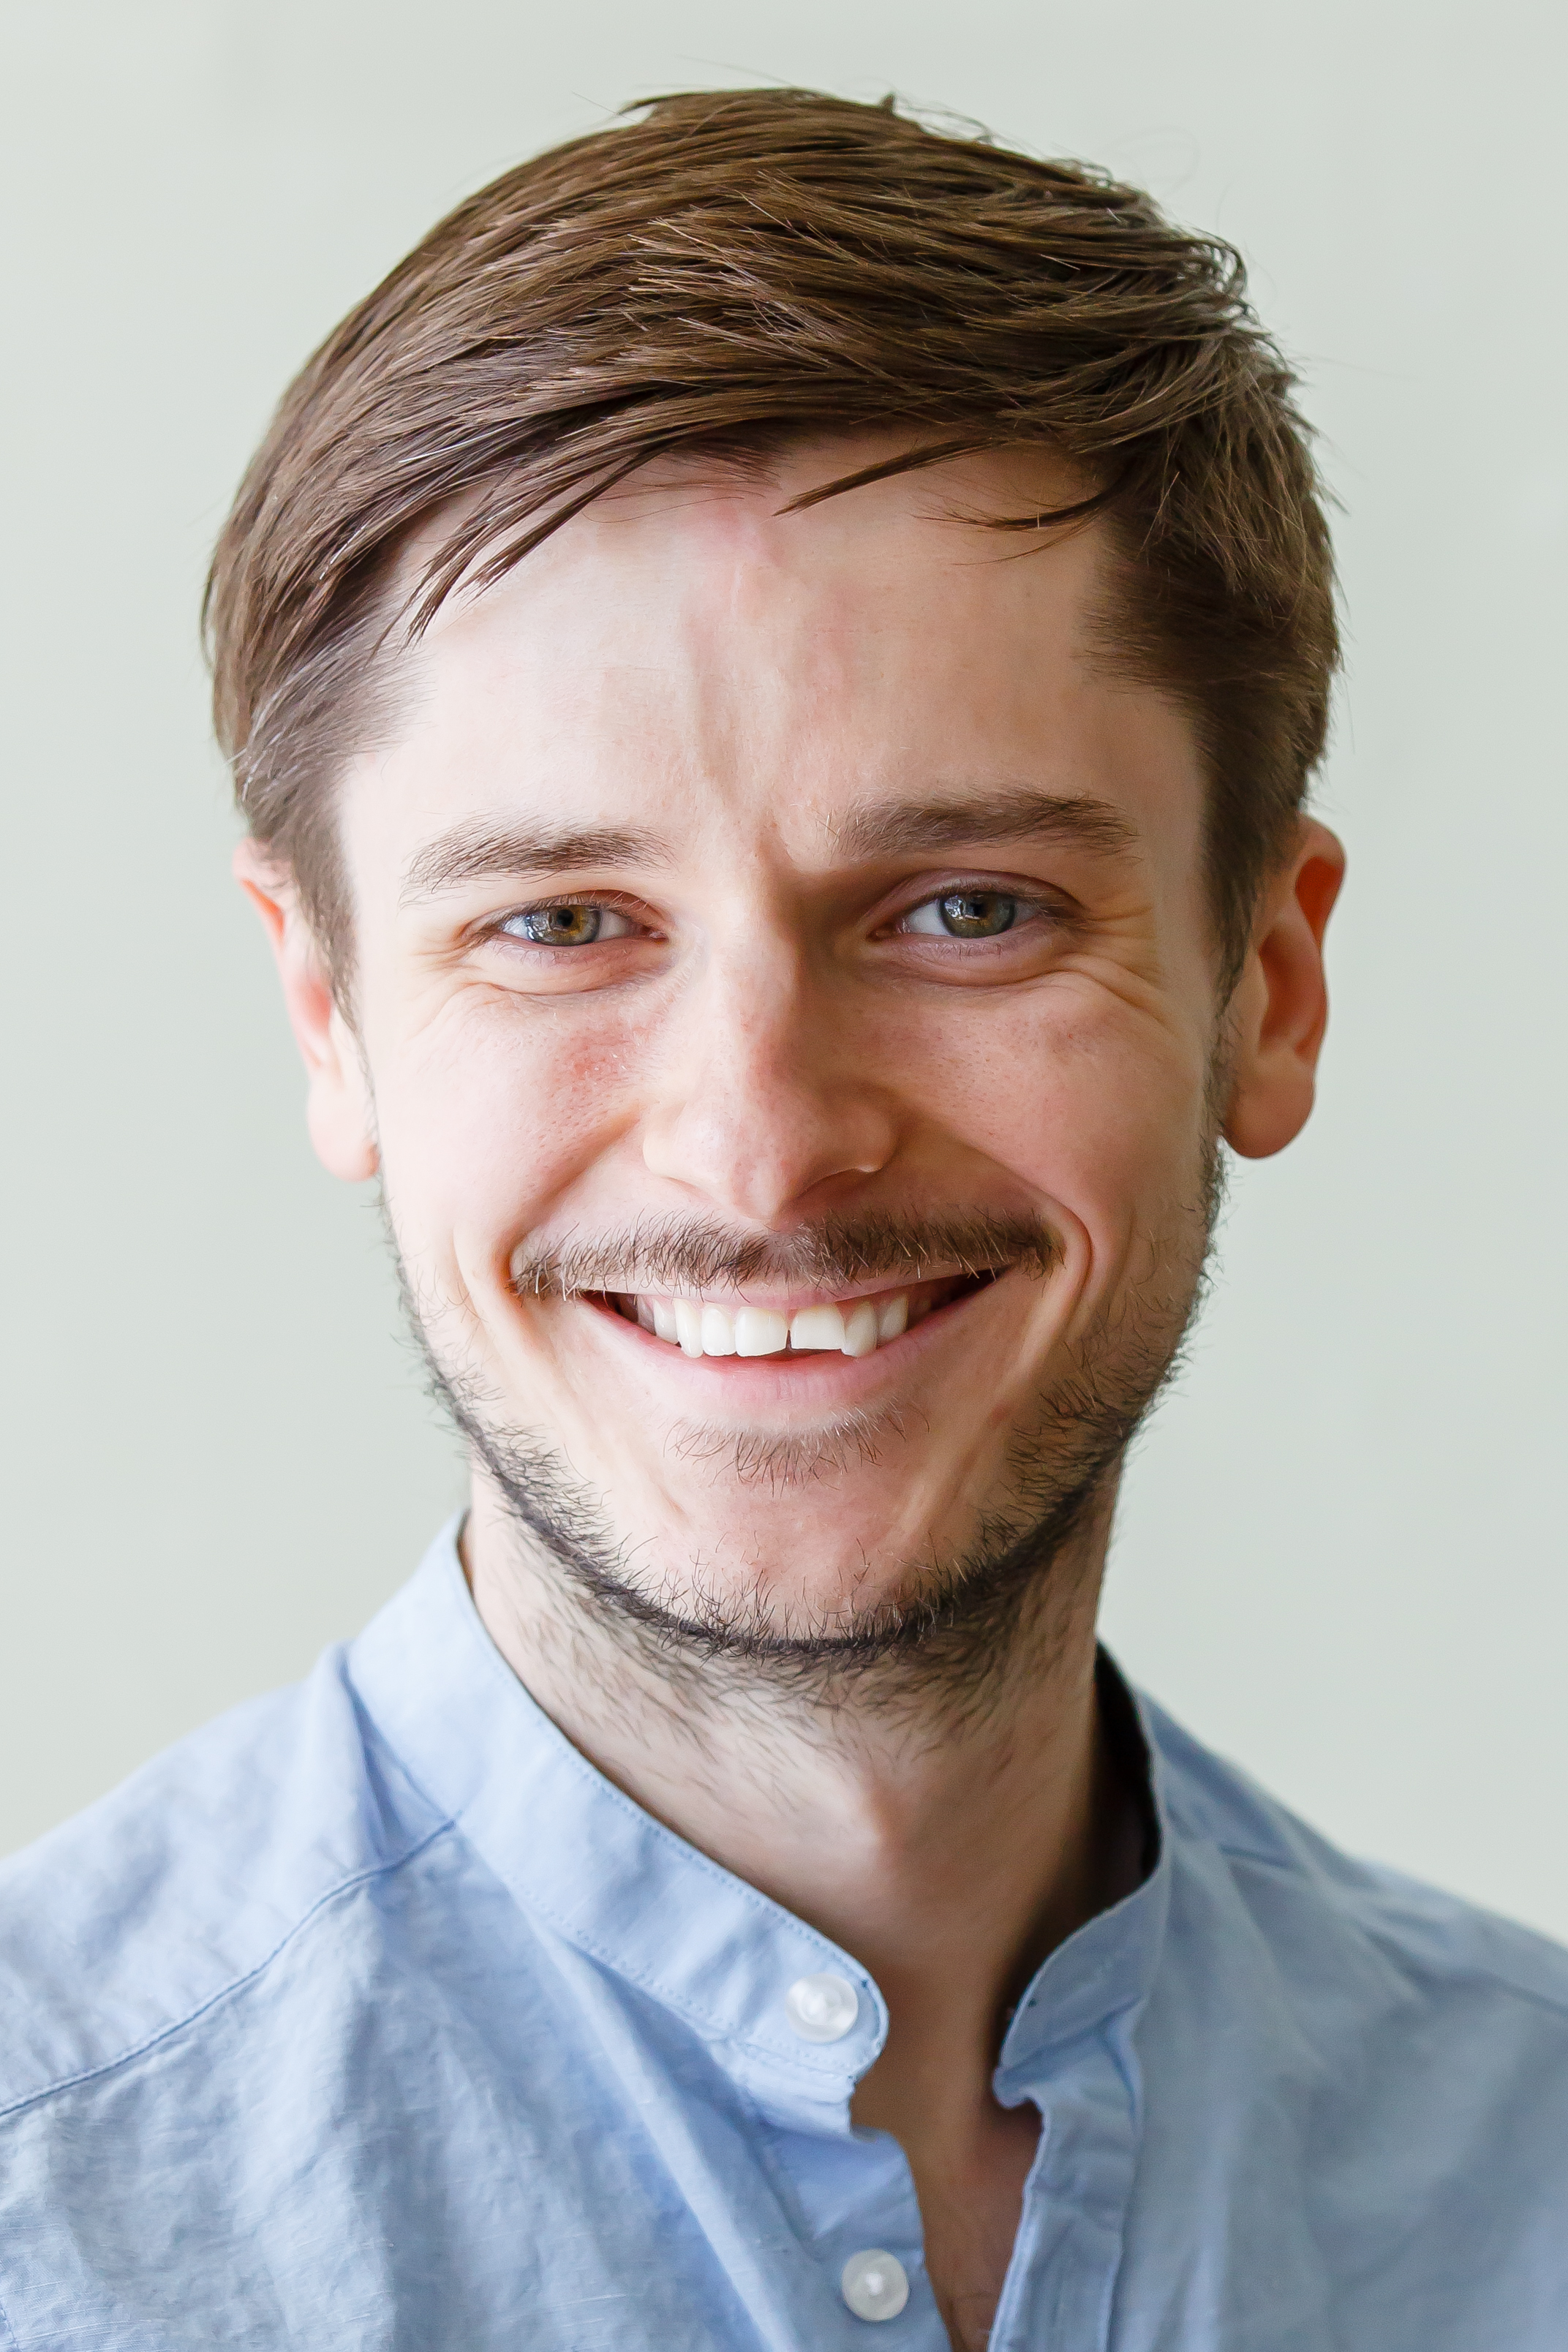 Andrew Sereno - Co-Founder, Head of Operations